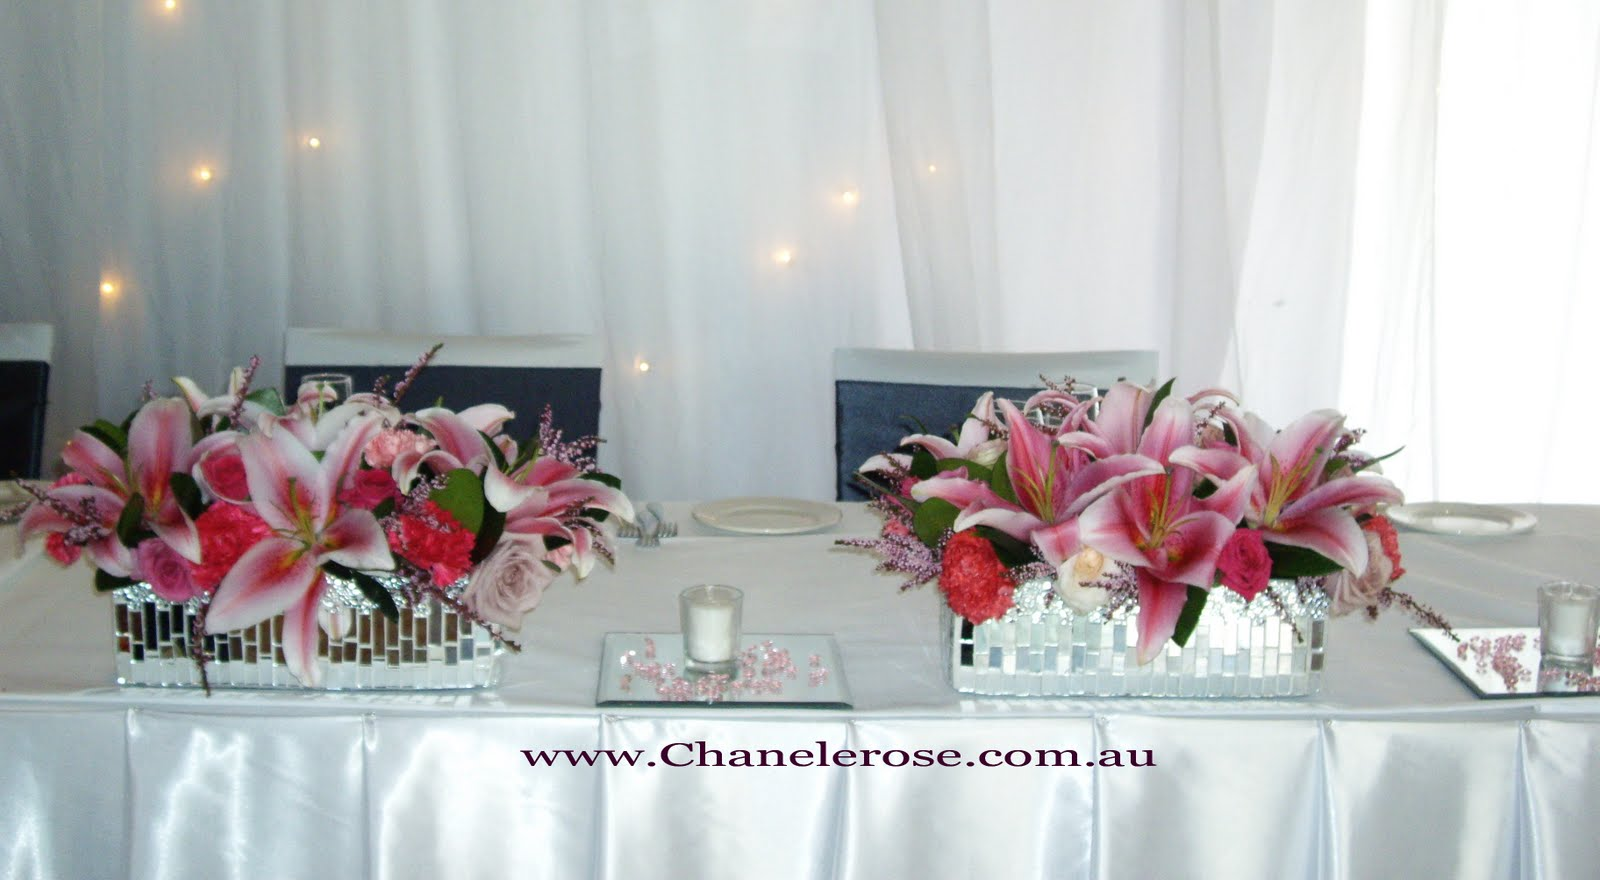 Wedding Chair Covers Sydney Used All Purpose Styling Chairs Chanele Rose Flowers Blog Stylist